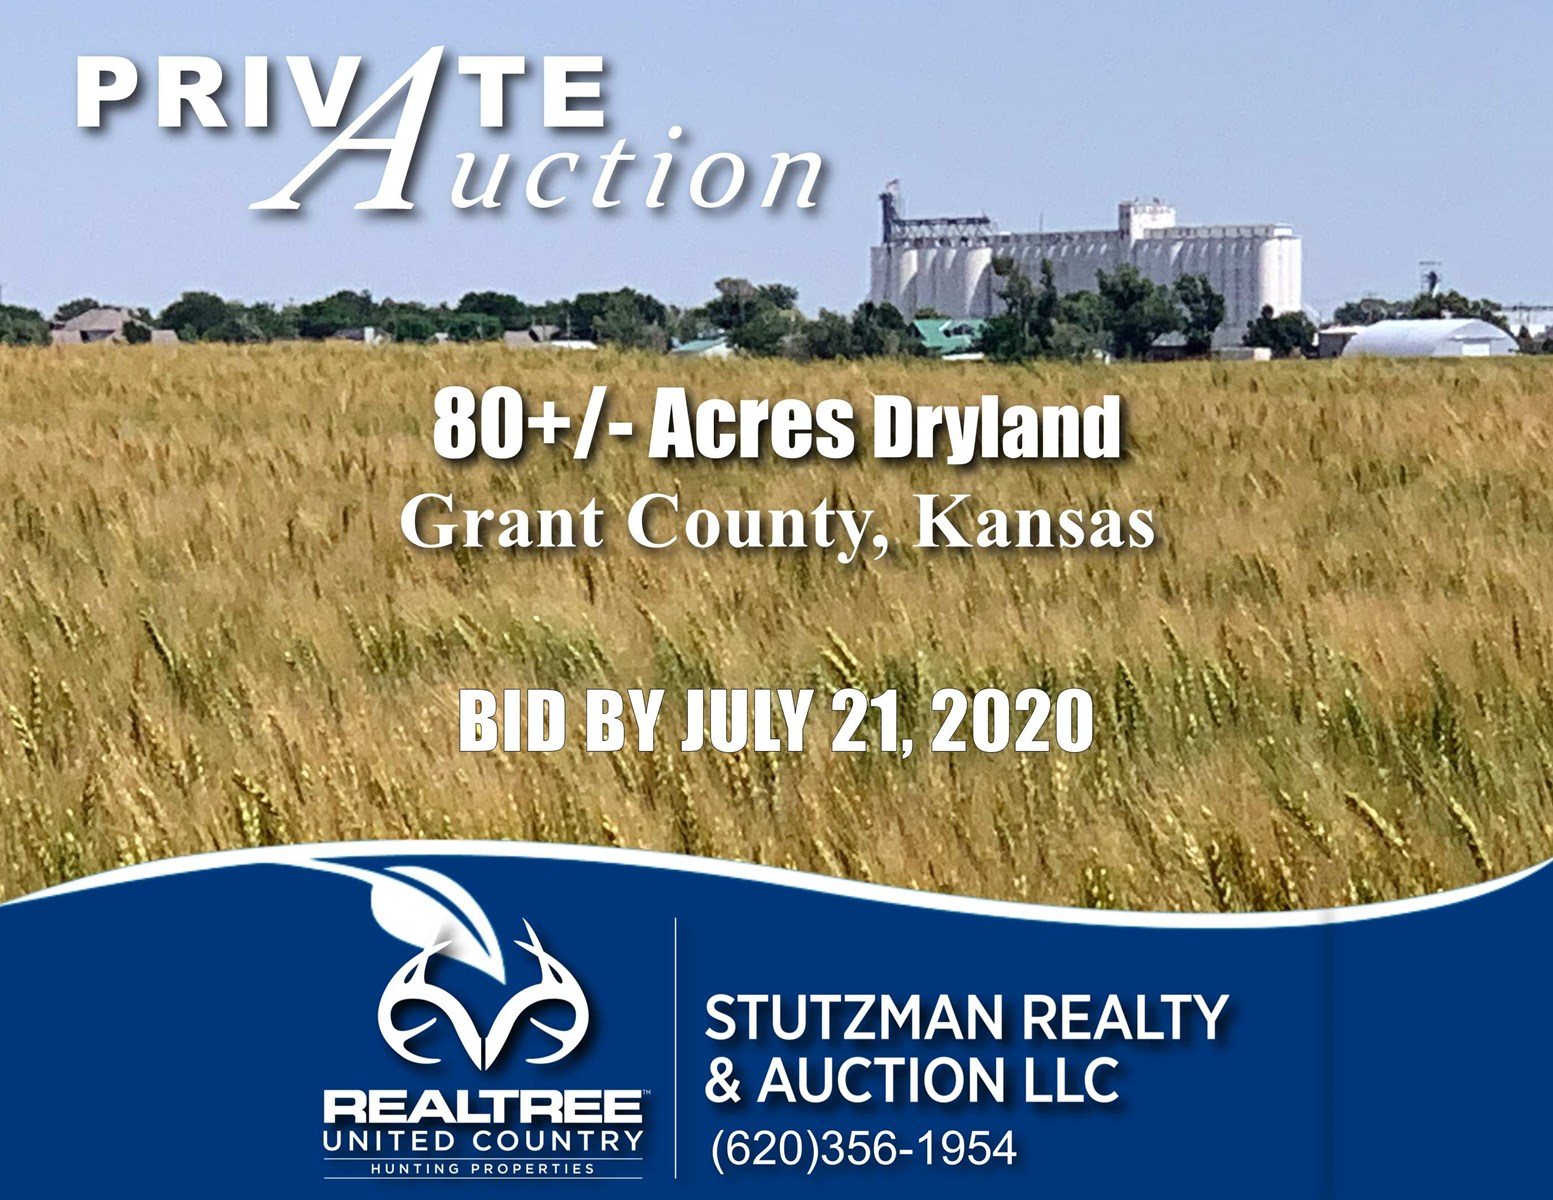 ULYSSES, KANSAS ~ PRIVATE AUCTION ~ 80 +/- ACRE FARMLAND